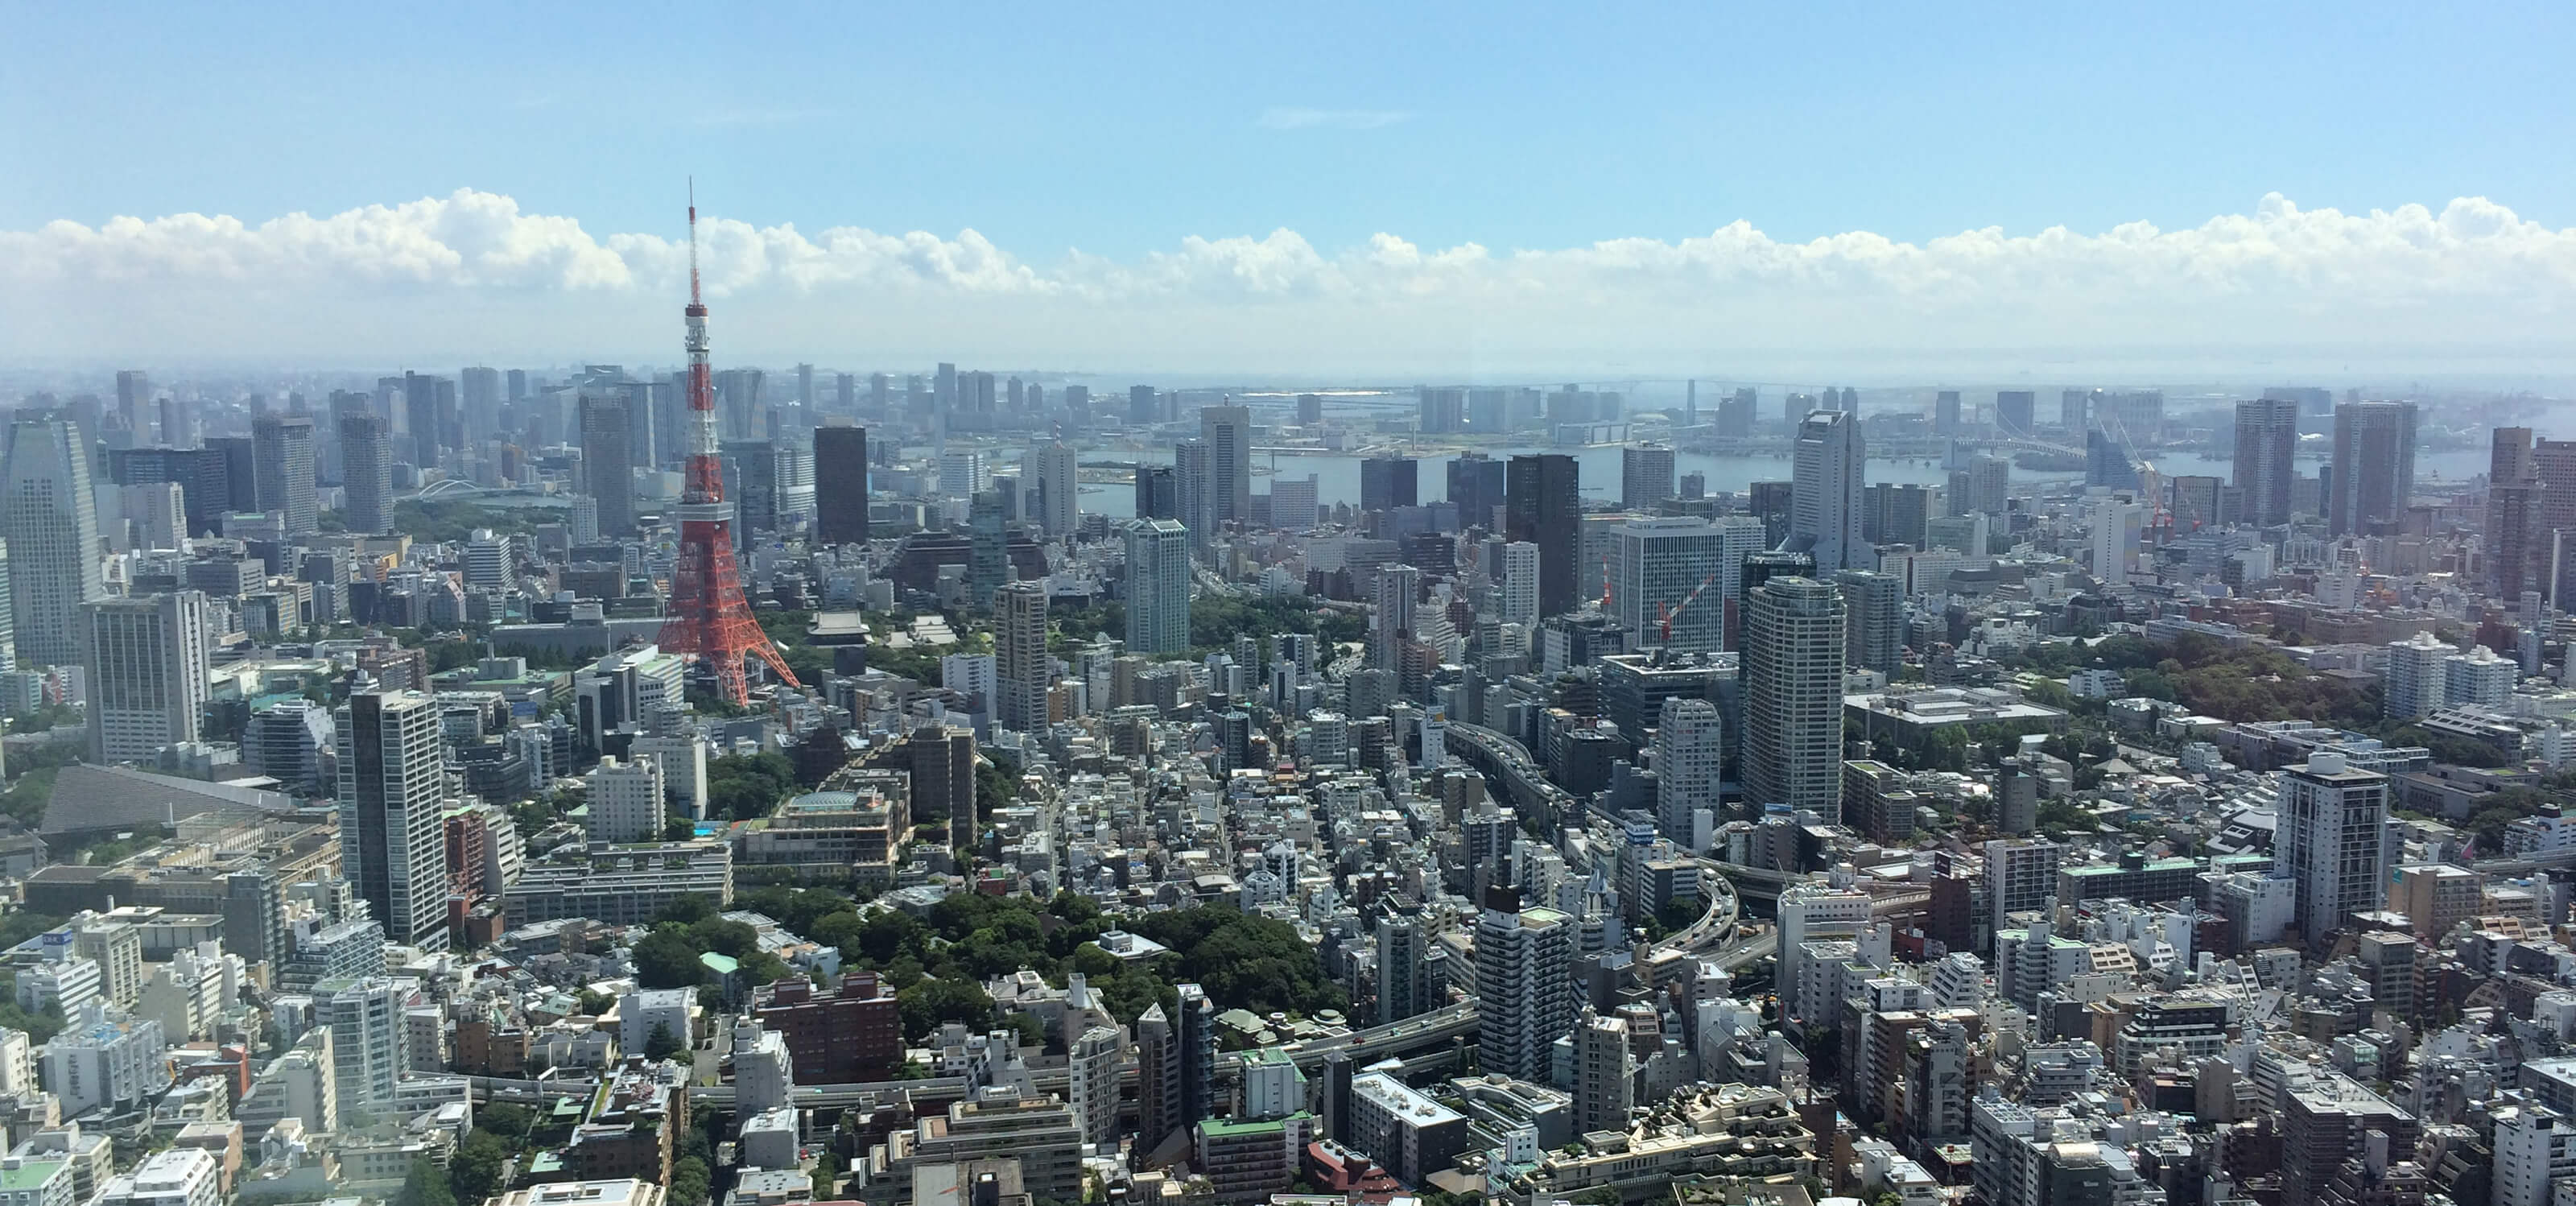 Photograph of the Tokyo skyline taken from a tall building